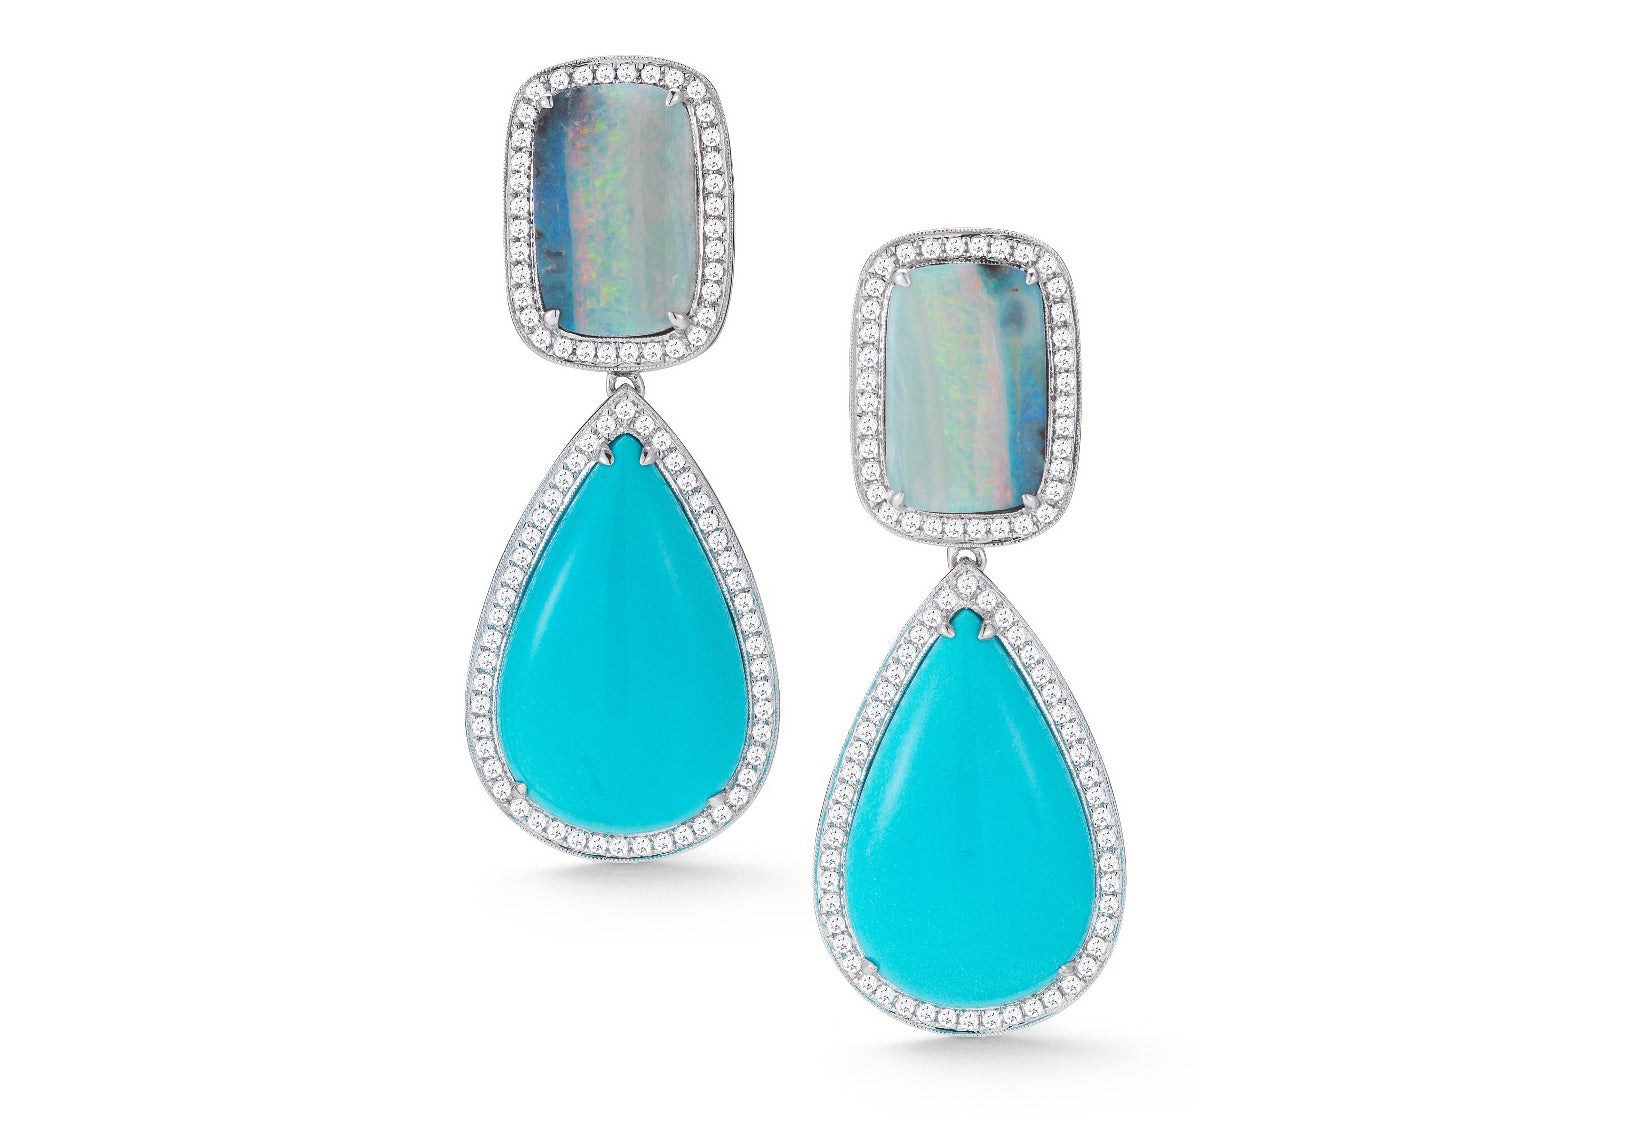 AF Collection - One of a Kind Drop Earrings with Turquoise, Boulder Opals and Diamonds, White Gold